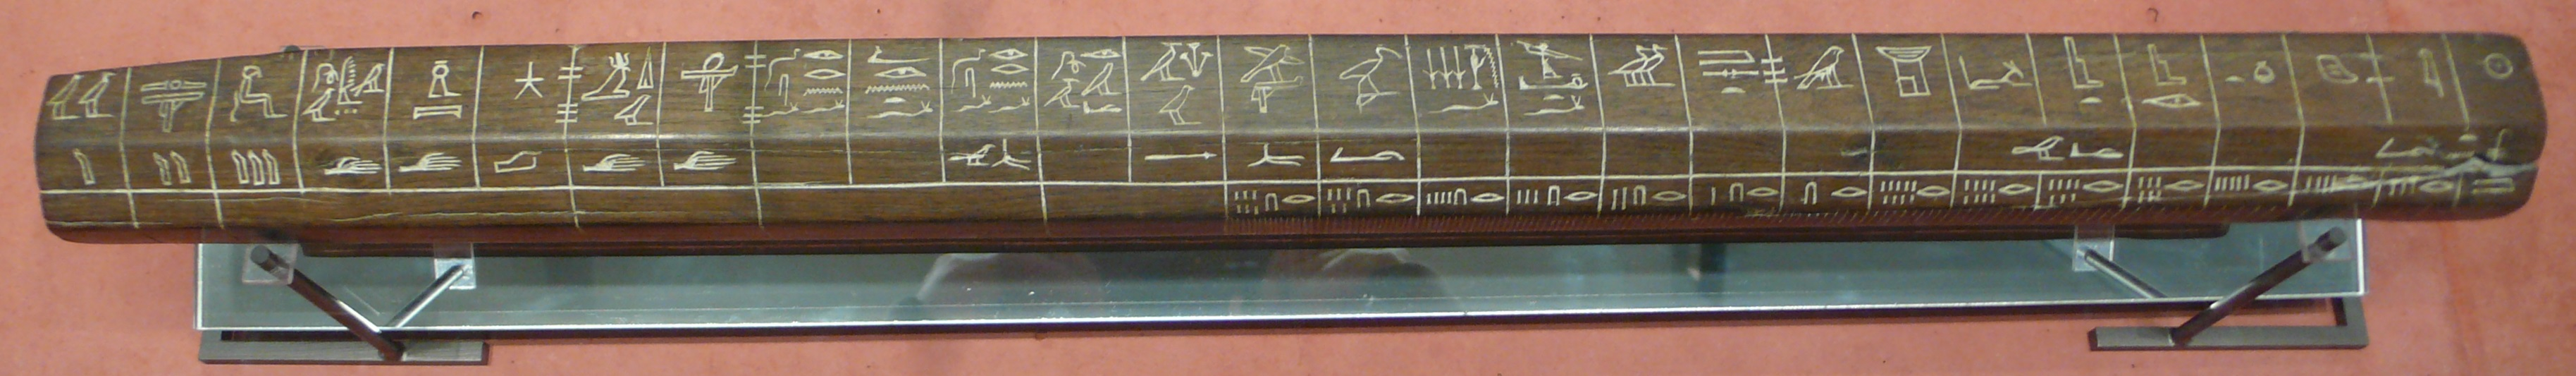 Egyptian_measuring_tool